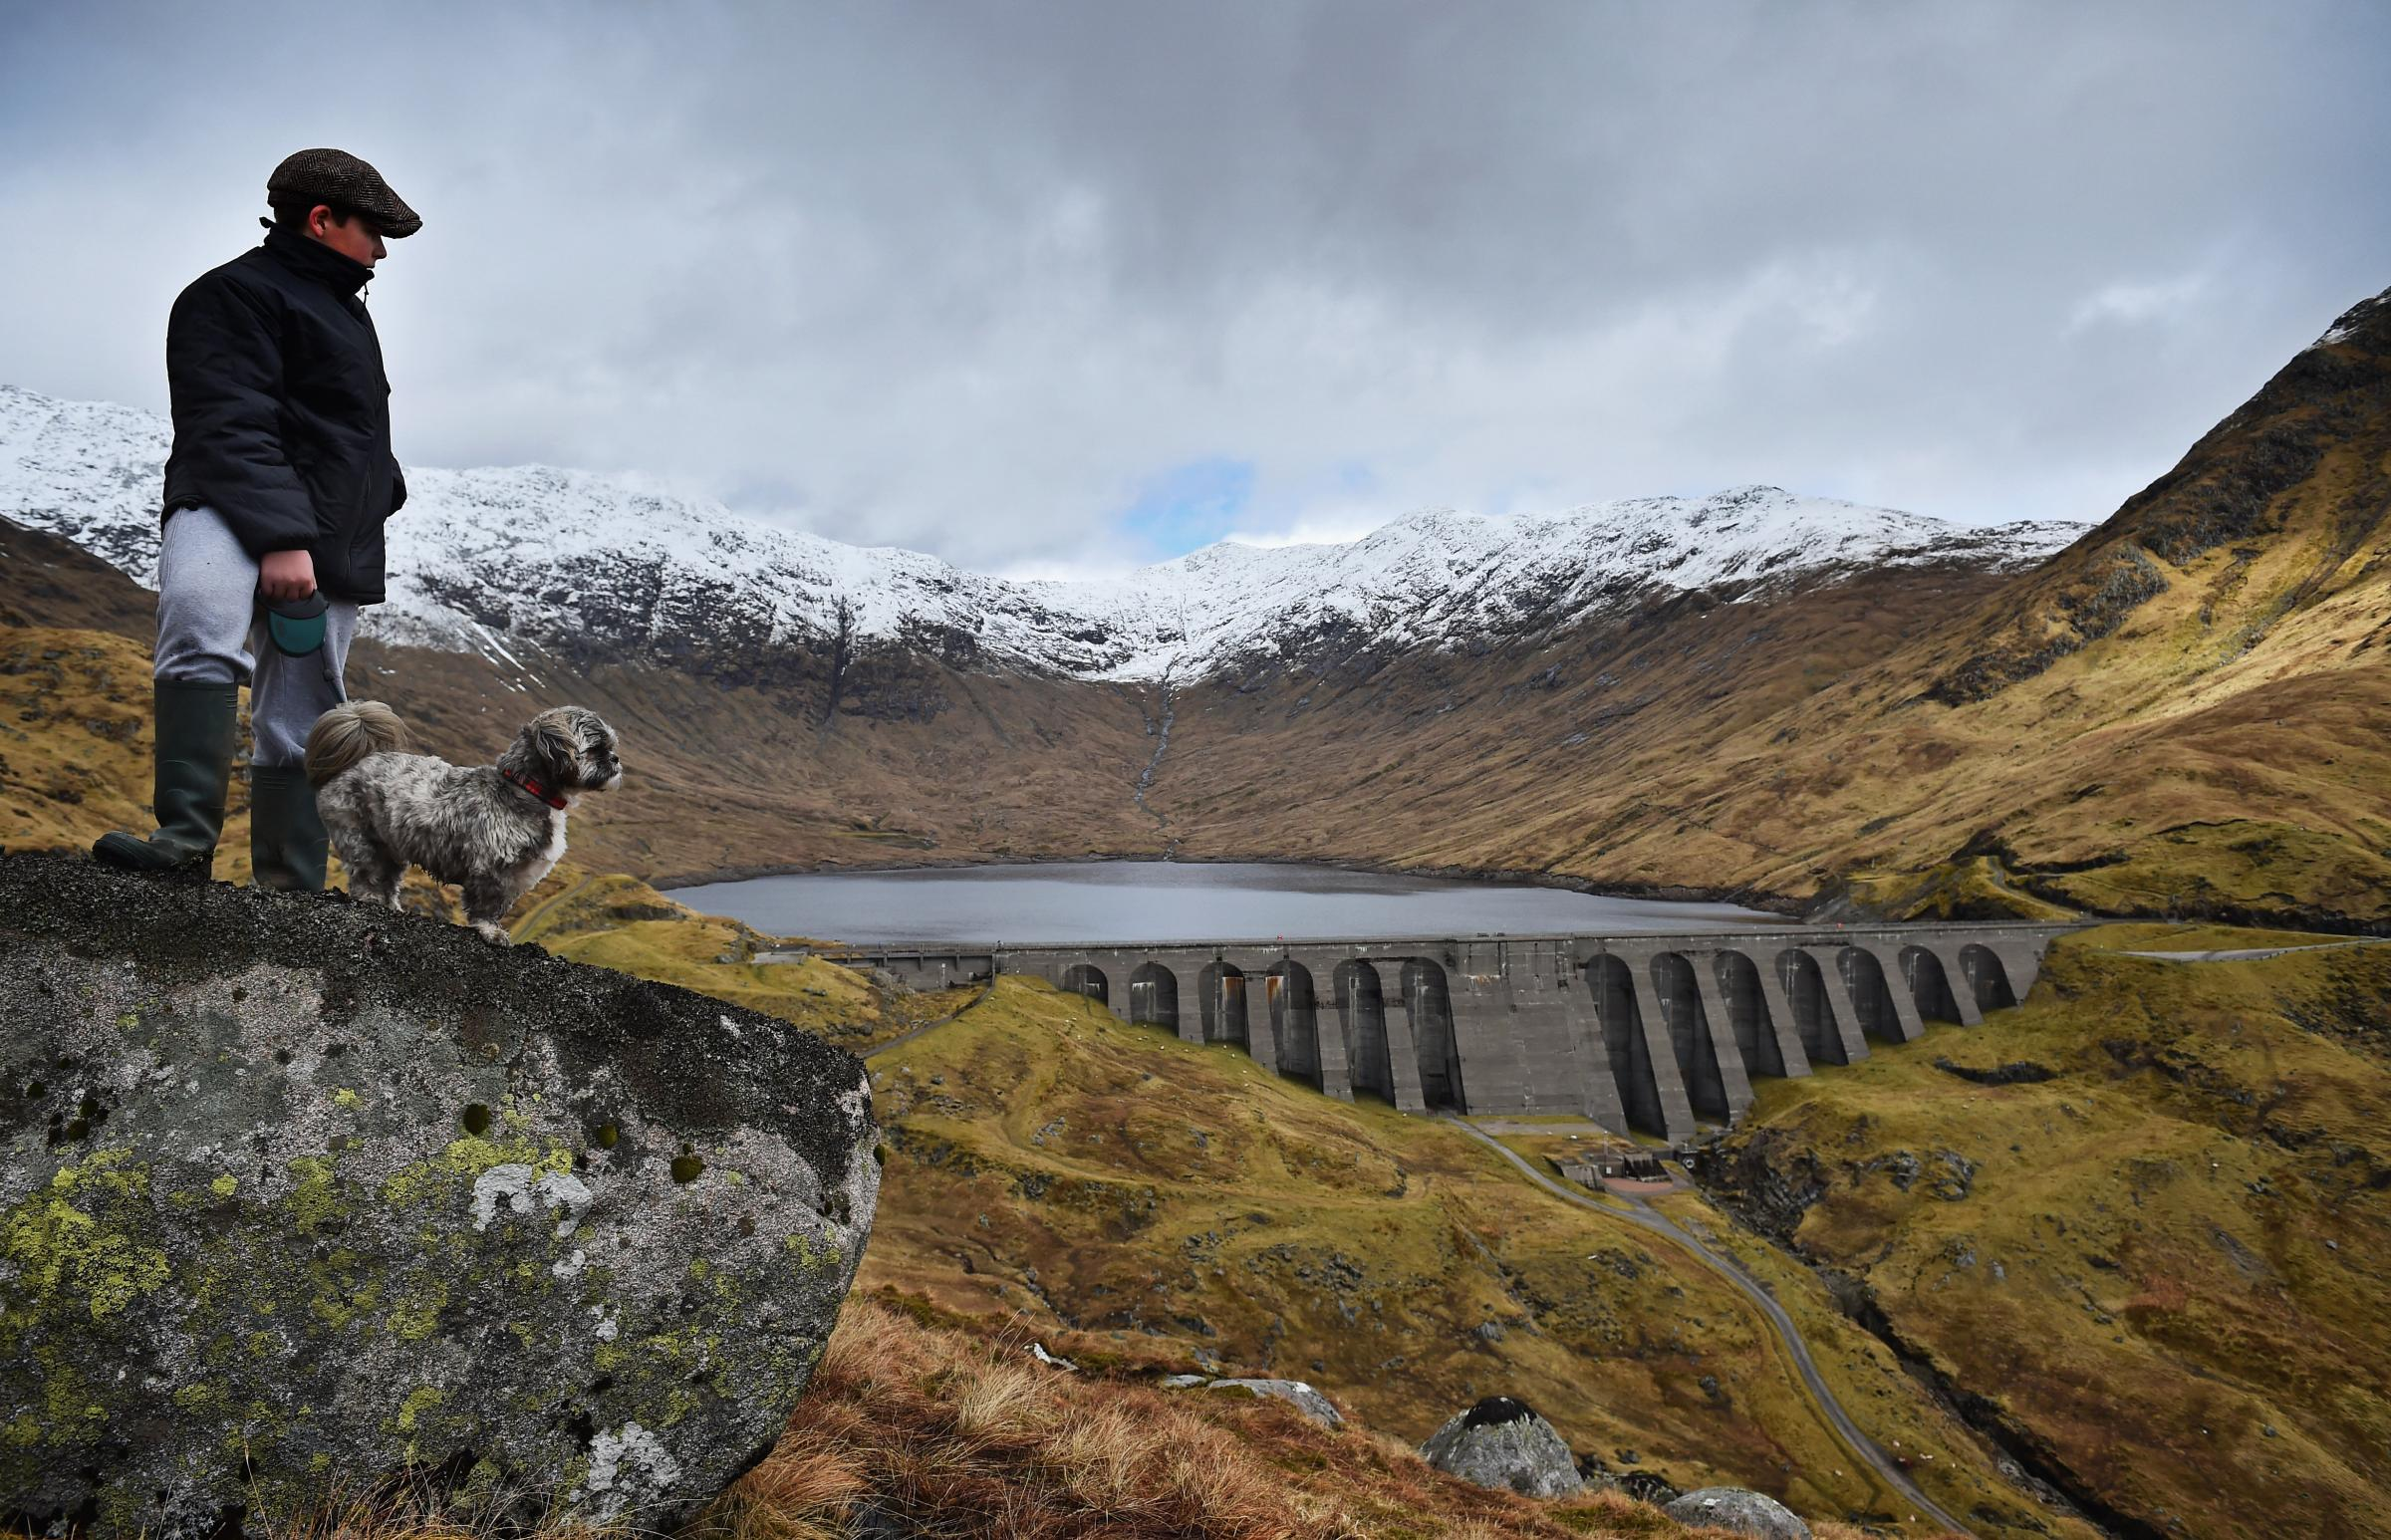 Hydro power has long served Scotland well